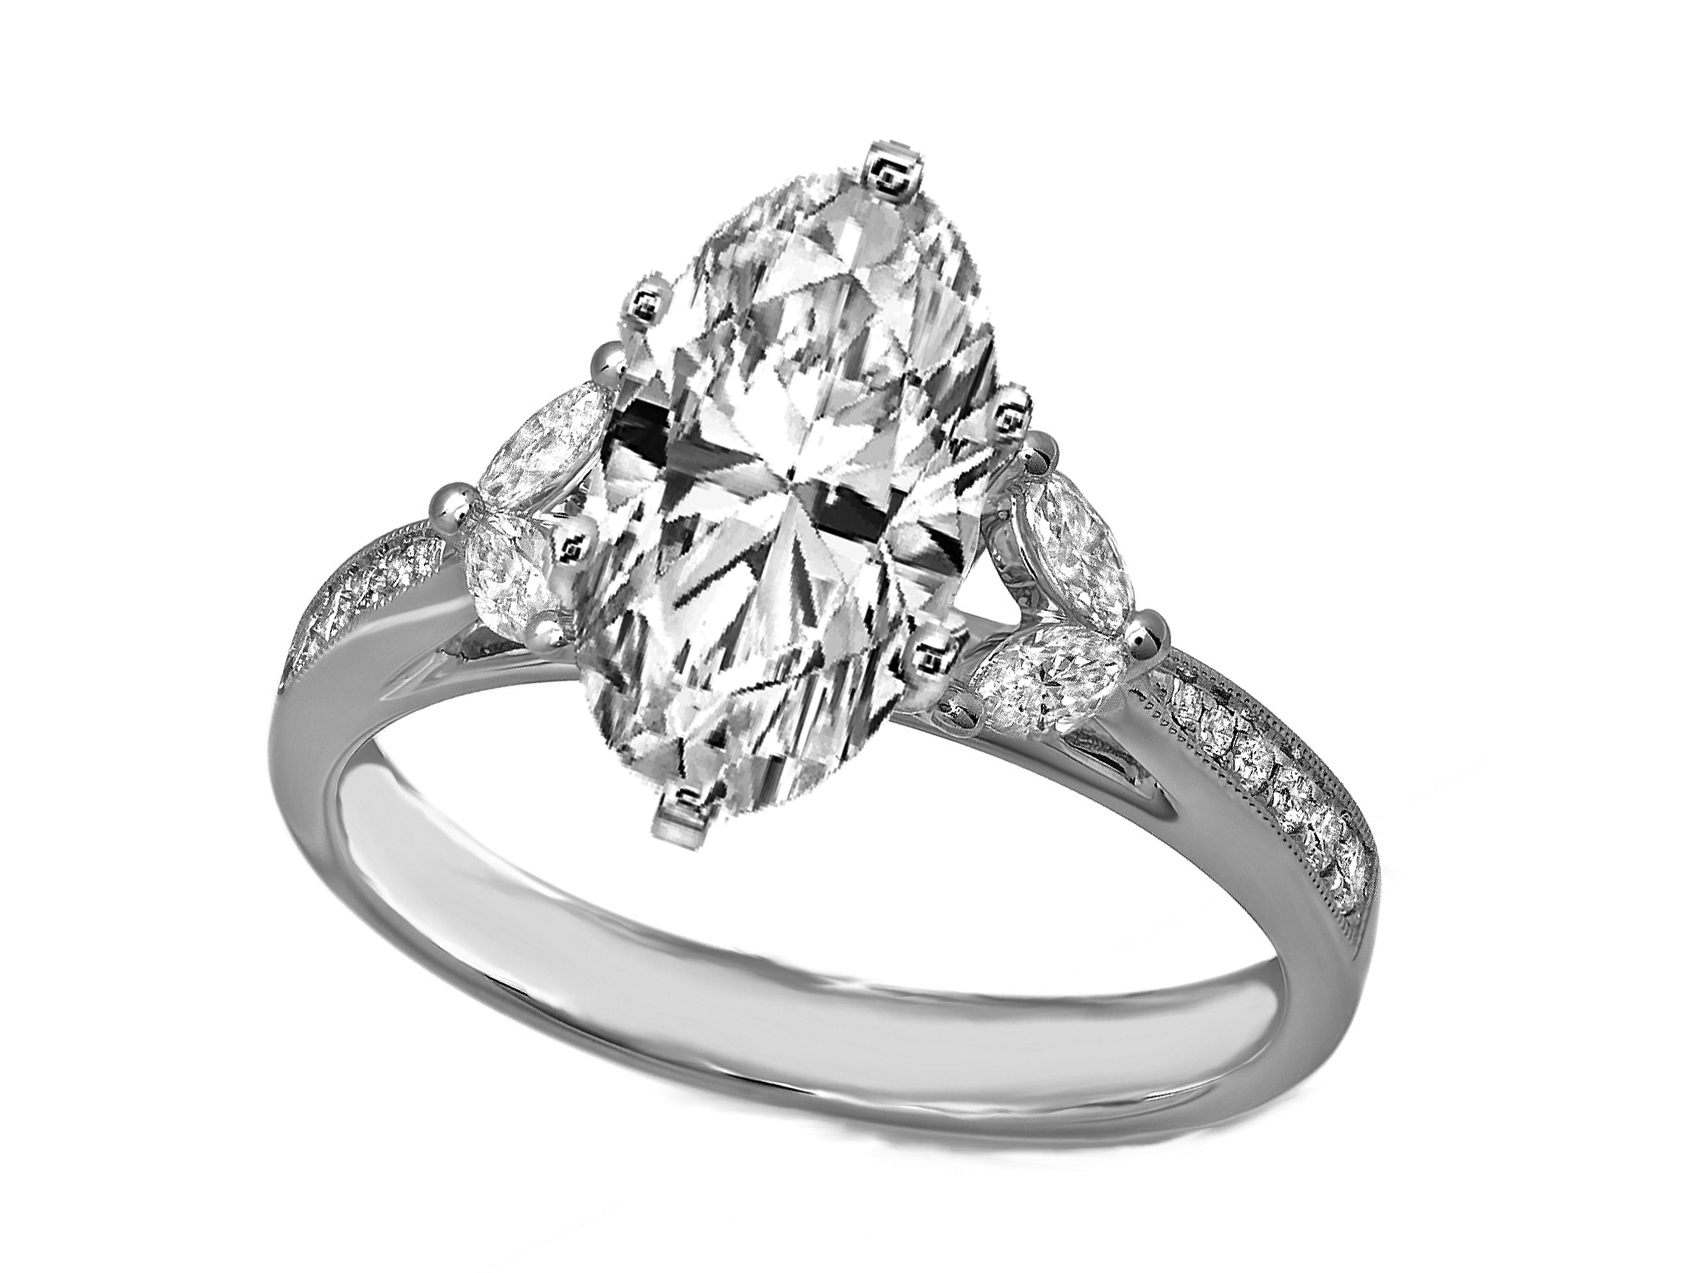 cfm three stone rings band engagementdetails white diamond cathedral gold engagement ring oval pave in